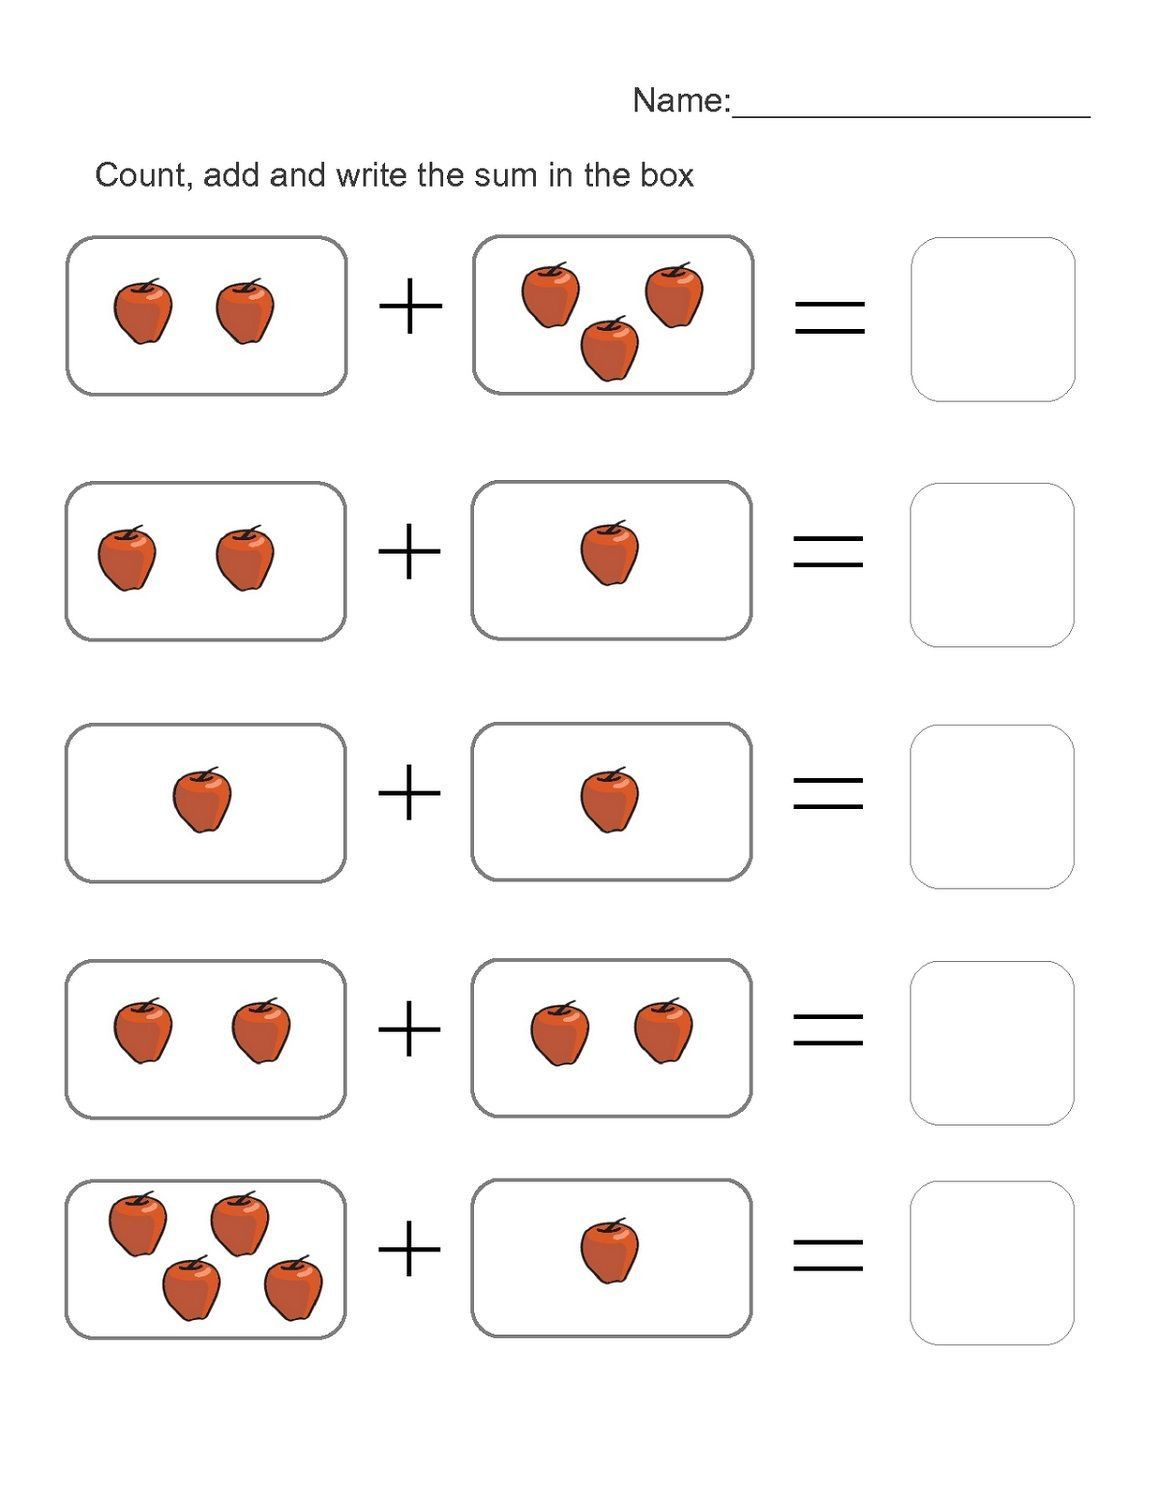 3 Basic Addition Worksheet Preschool Addition Basic Preschool Worksheet Math Addition Worksheets Preschool Math Worksheets Fun Worksheets For Kids Adding sums for year olds